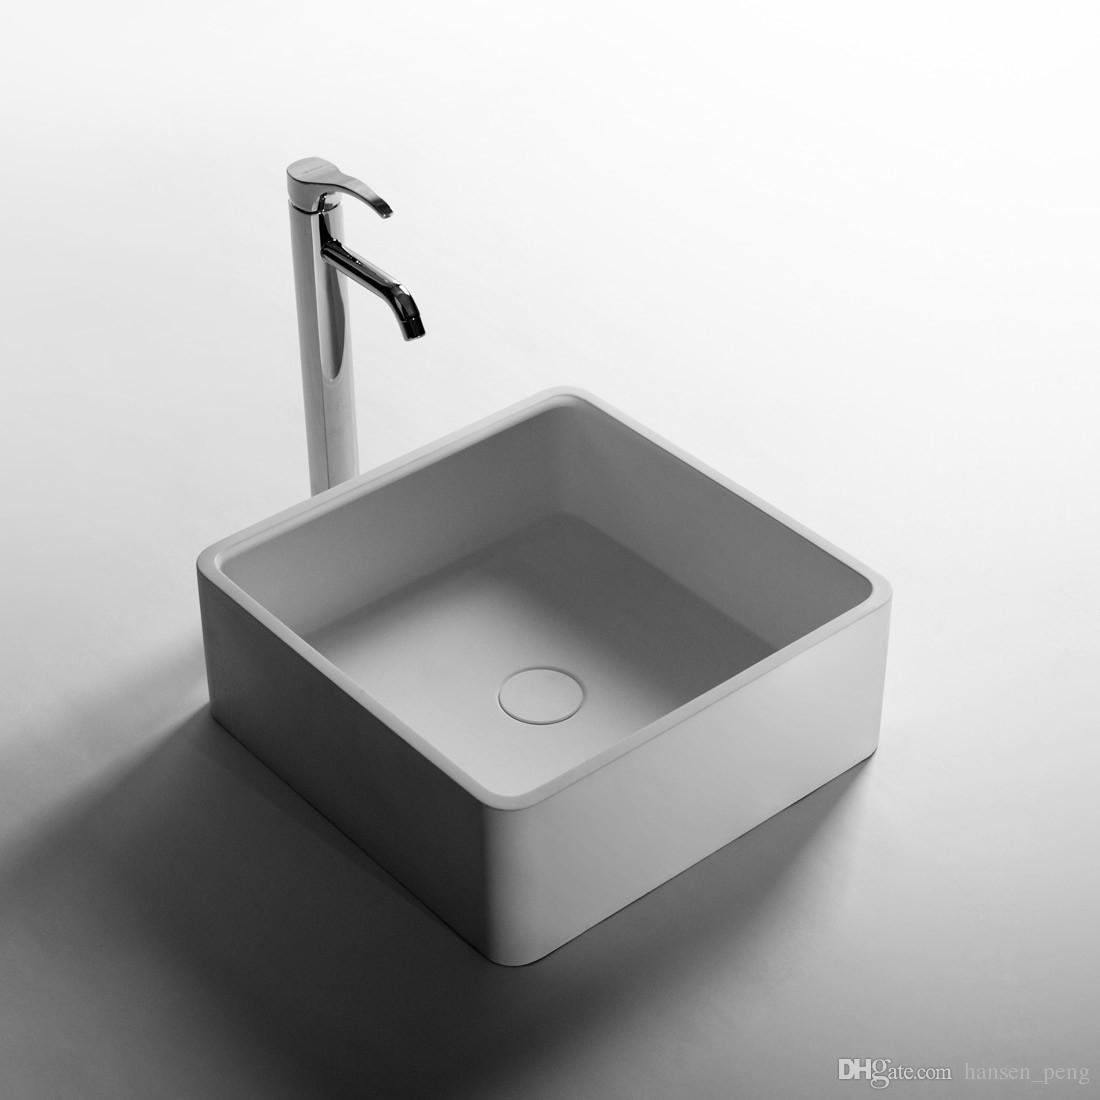 Square Bathroom Solid Surface Stone Counter Top Vessel Sink Fashionable Cloakroom Stone Vanity Wash Basin RS3874-2